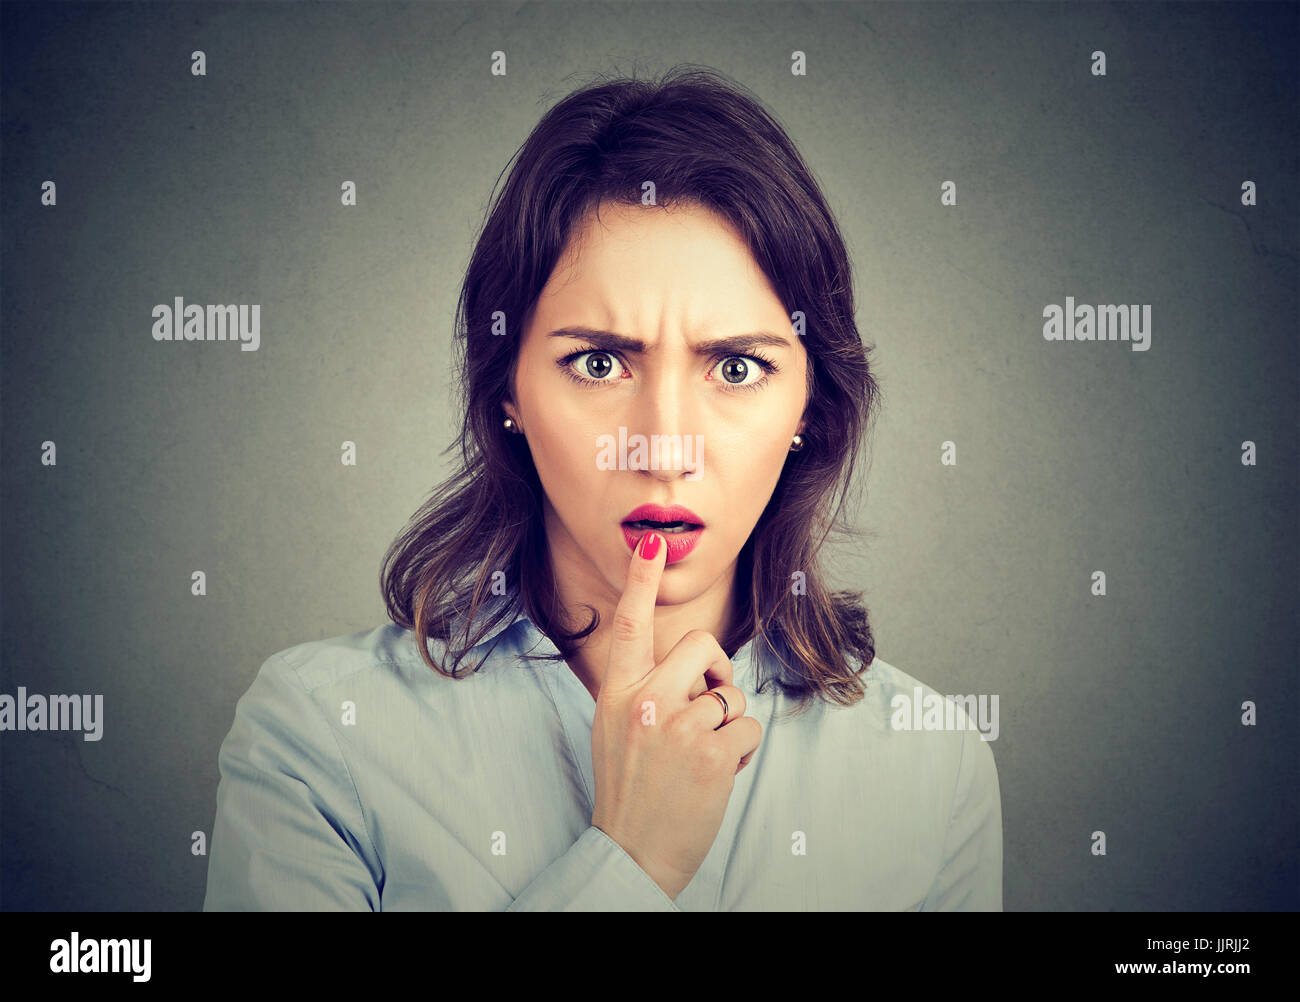 Surprised amazed scared woman looking at camera - Stock Image